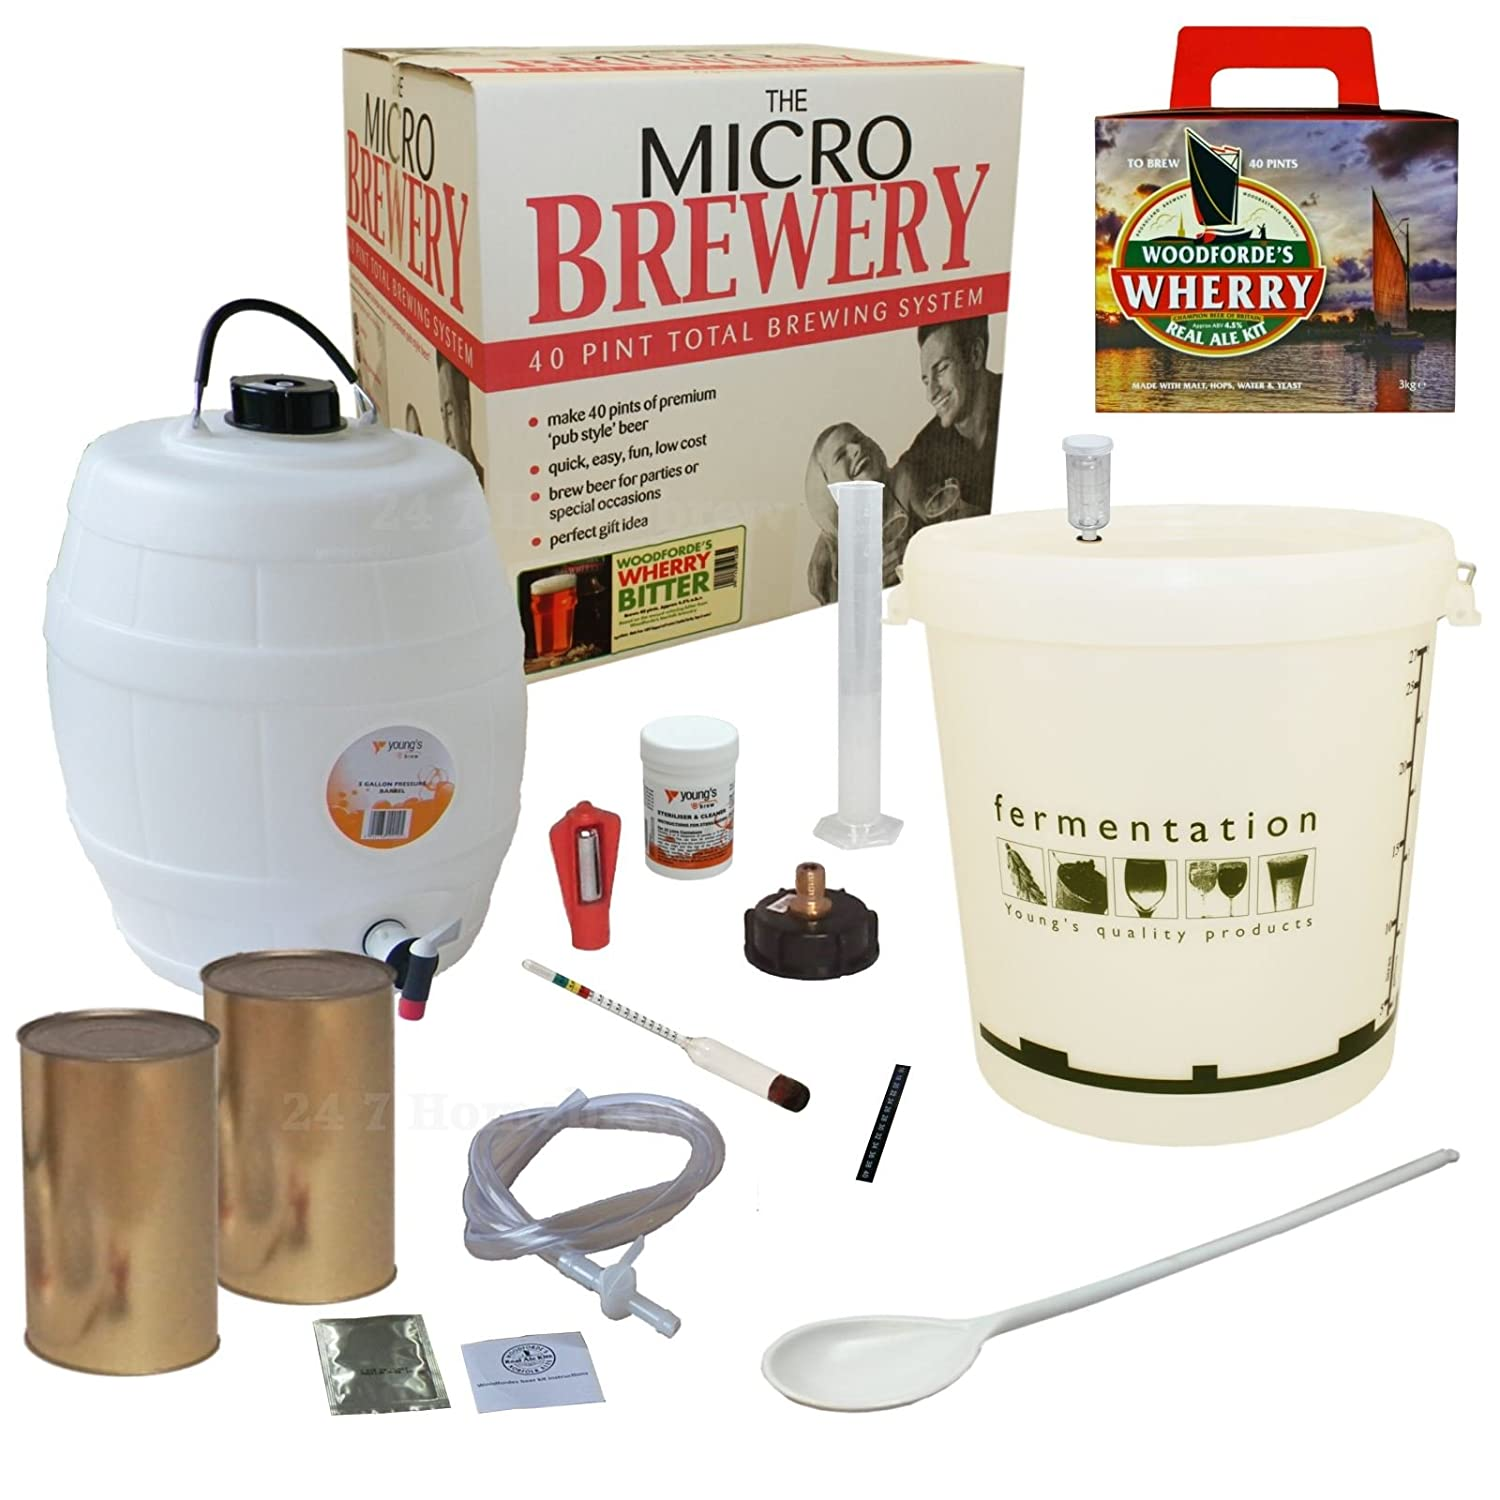 MICRO BREWERY 40 PINT BEER MAKING KIT HOME BREW BITTER Amazonco